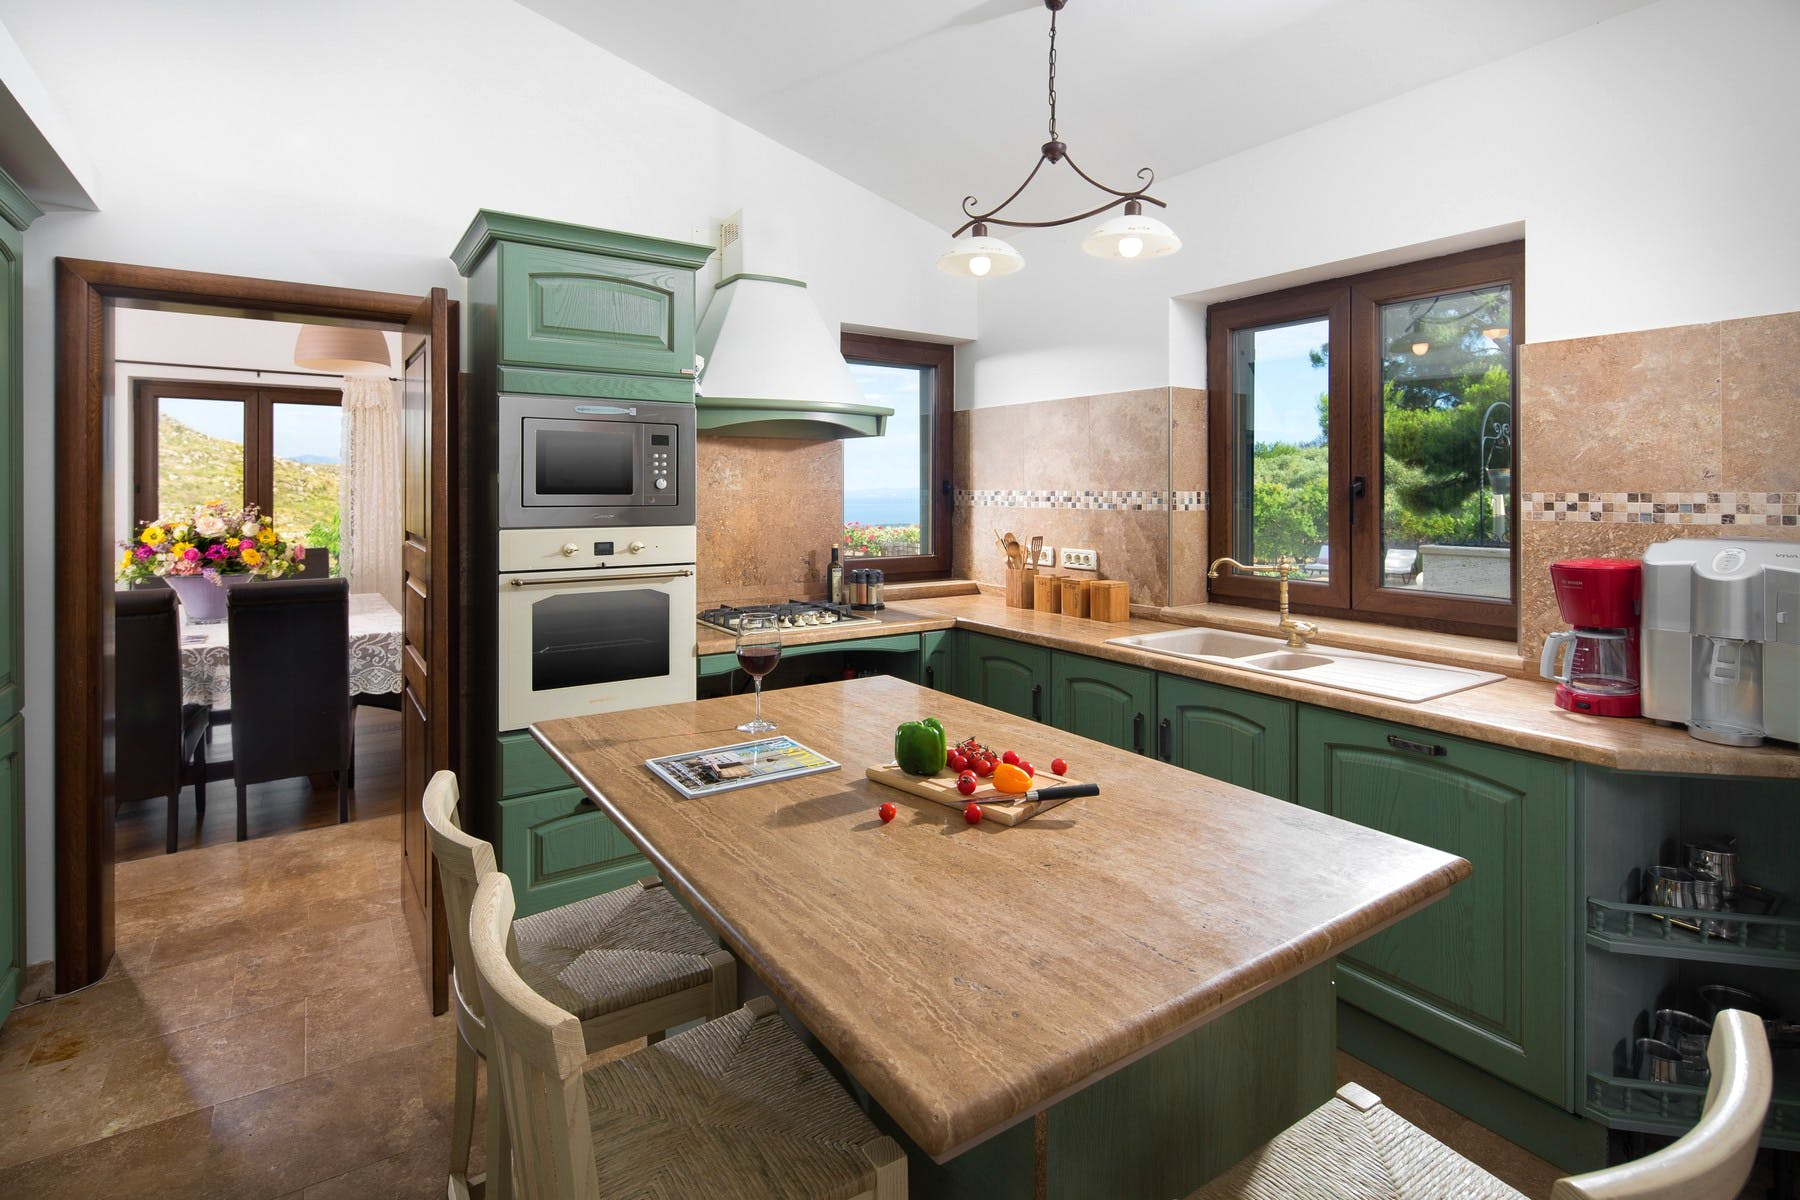 Rustical kitchen with dining area